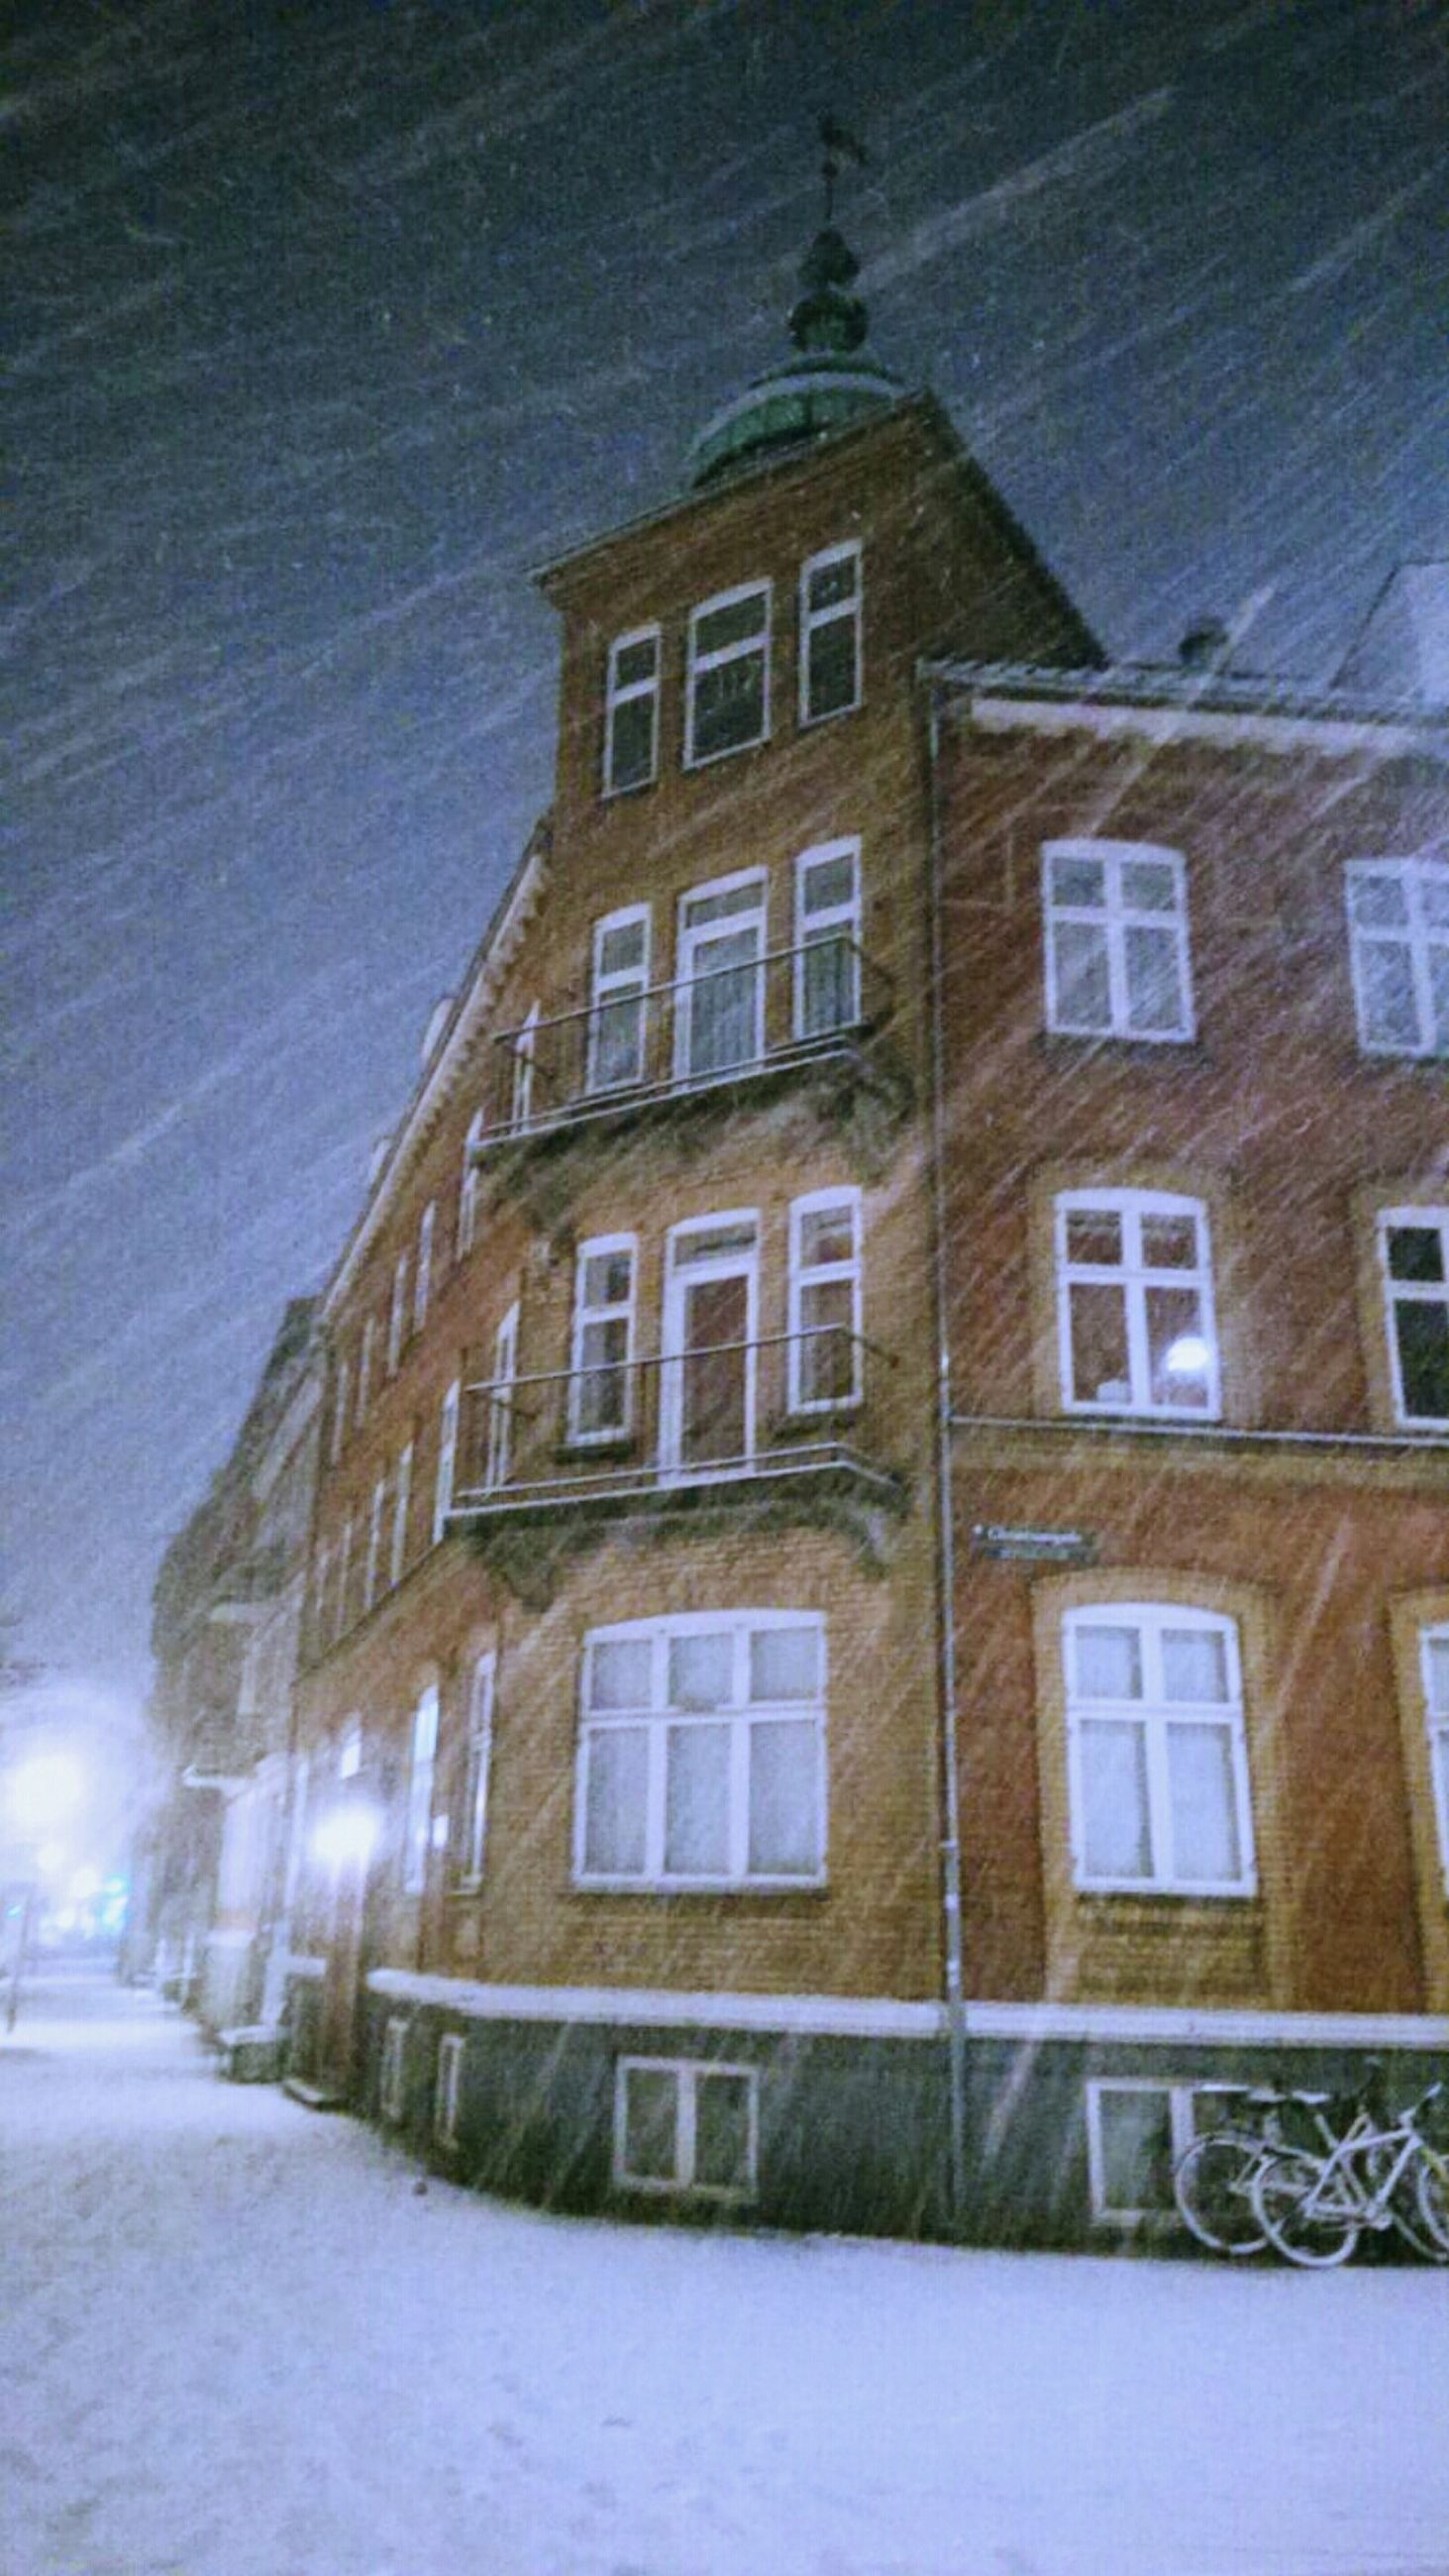 architecture, built structure, building exterior, window, sky, building, snow, cold temperature, winter, residential building, residential structure, street, day, outdoors, no people, house, facade, weather, season, road